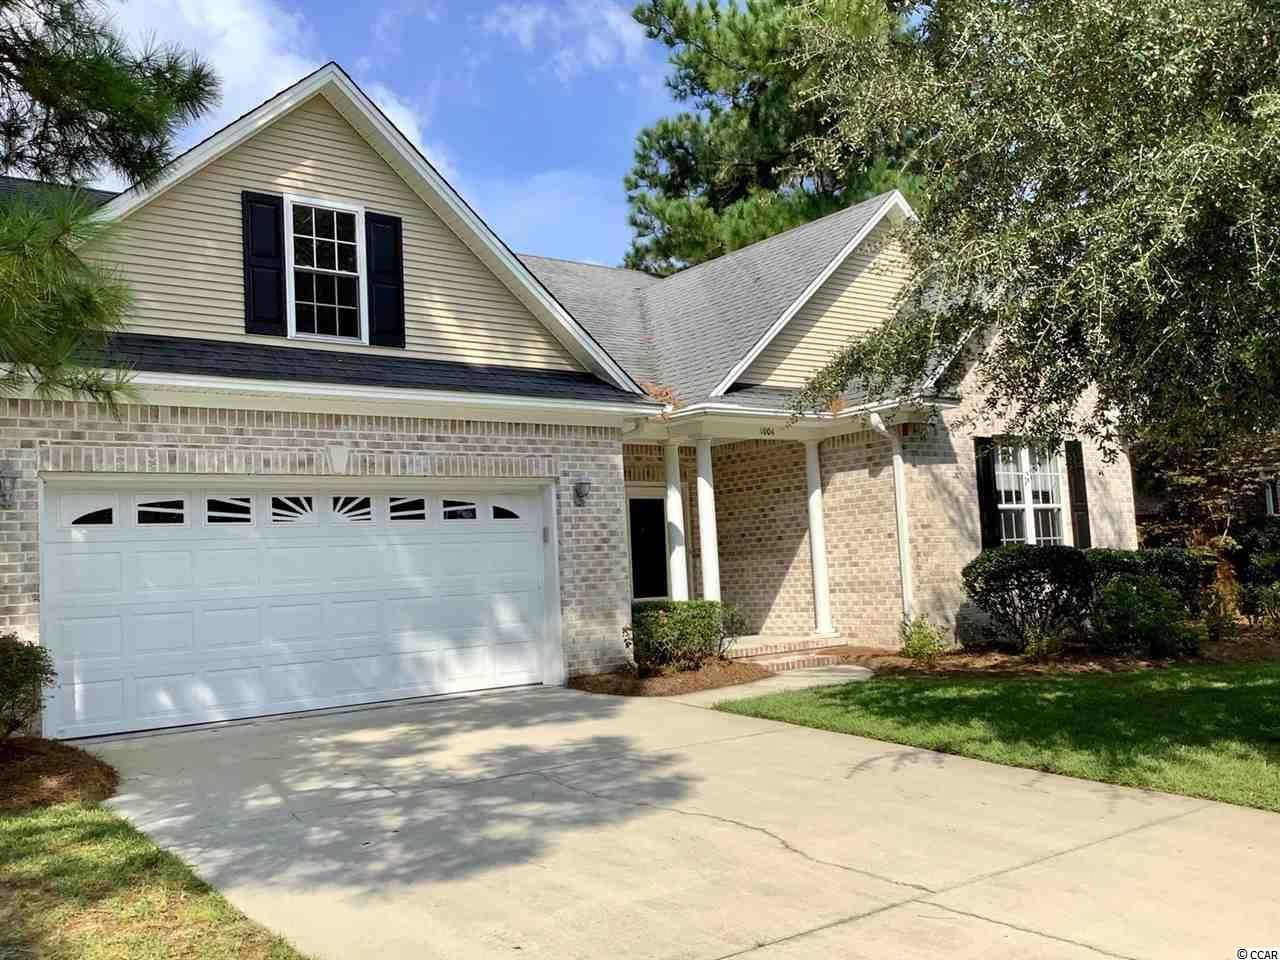 1004 Tall Grass Dr., Leland, NC, 28451, Holly Glen at Magnolia Greens Home For Sale